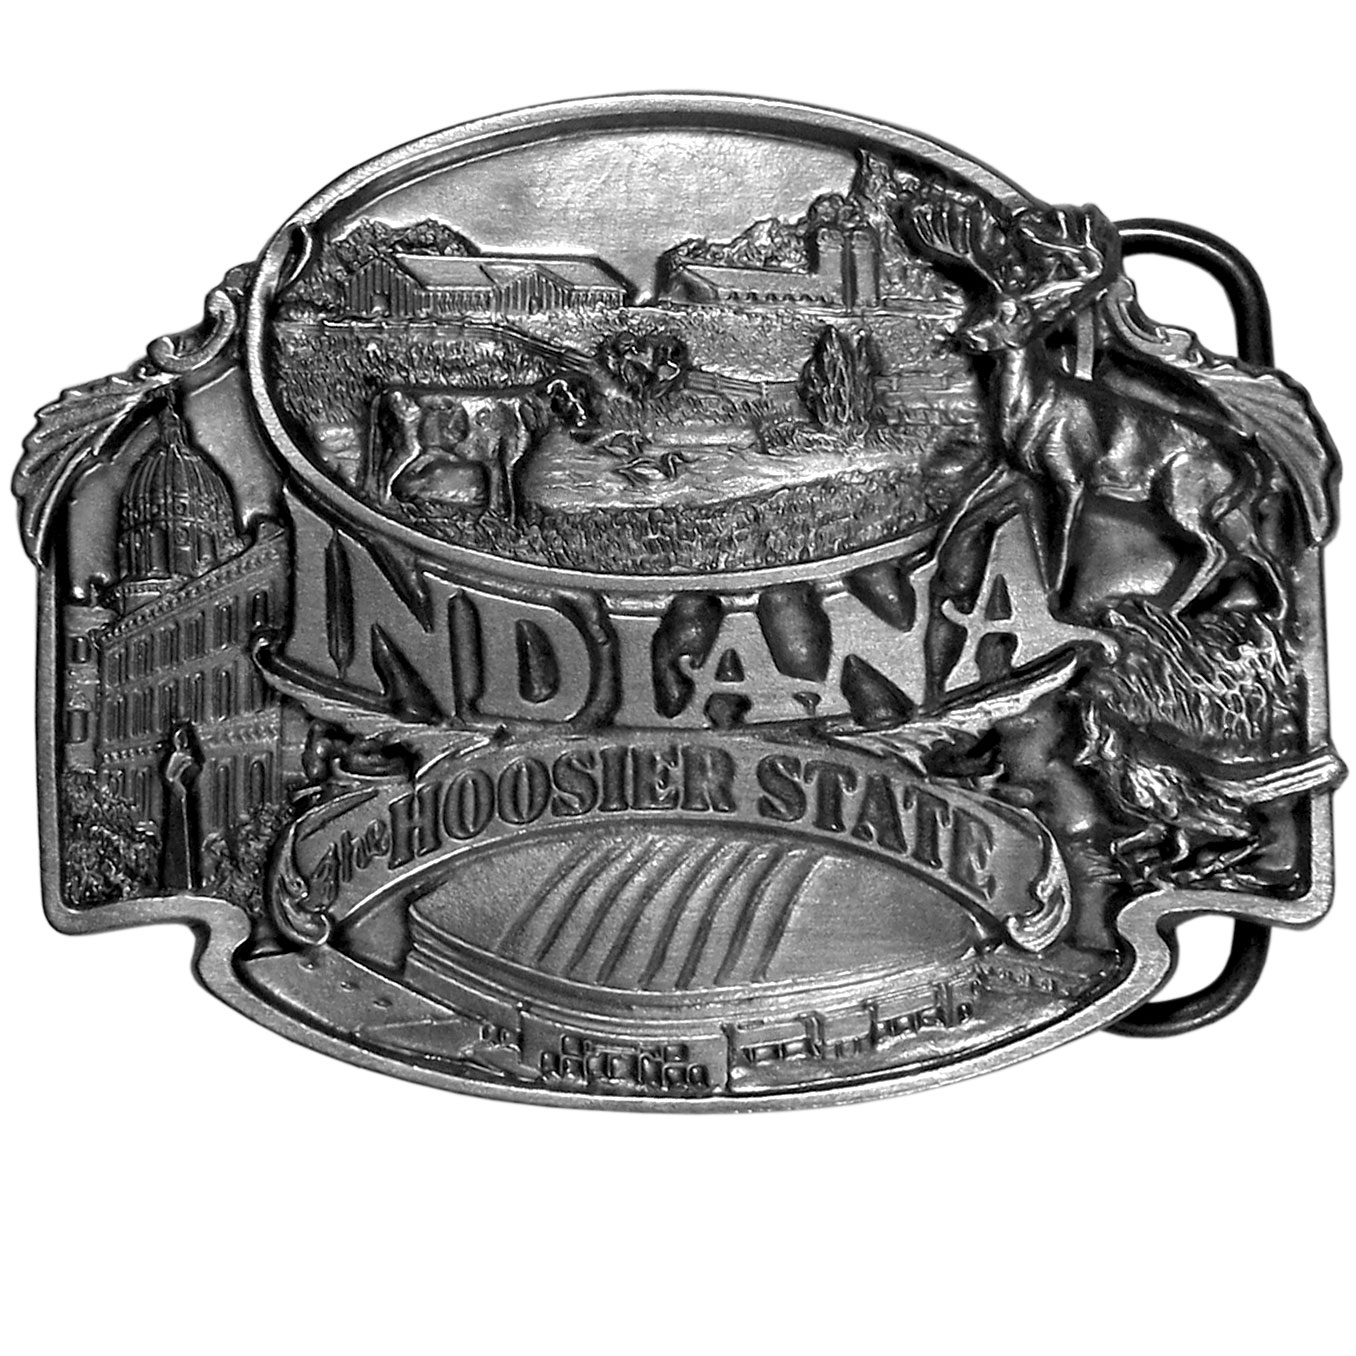 "Indiana The Hoosier State Antiqued Belt Buckle - """"""Indiana the Hoosier State"""" is written in bold on this belt buckle.  There is a farm with barns, cows, a river and silos on the top with the Indiana state capitol, the Hoosier Dome, a whitetailed deer and a cardinal.  On the back are the words, """"Indiana, the Hoosier state, known for the beautiful countryside, great cities and exceptional people.""""  Finely sculpted and intricately designed belt buckle. Our unique designs often become collector's items."""